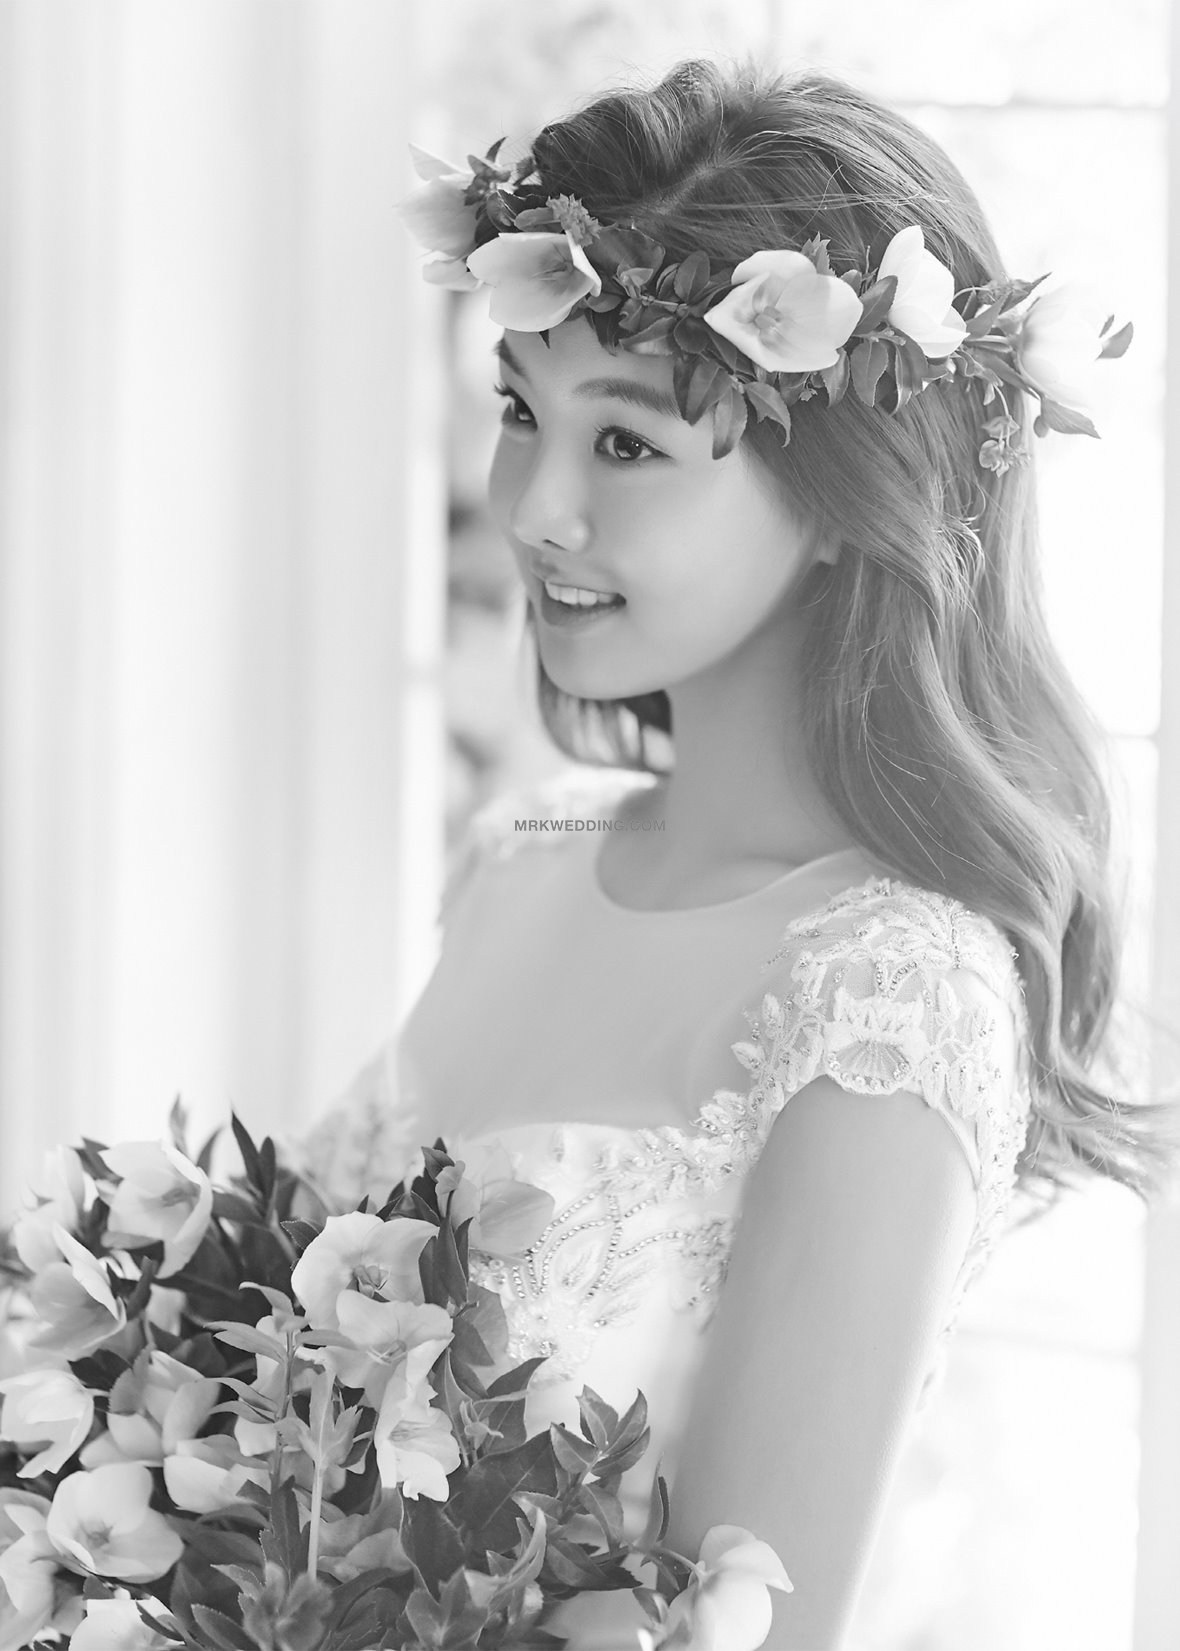 Mrk Korea Wedding (7).jpg